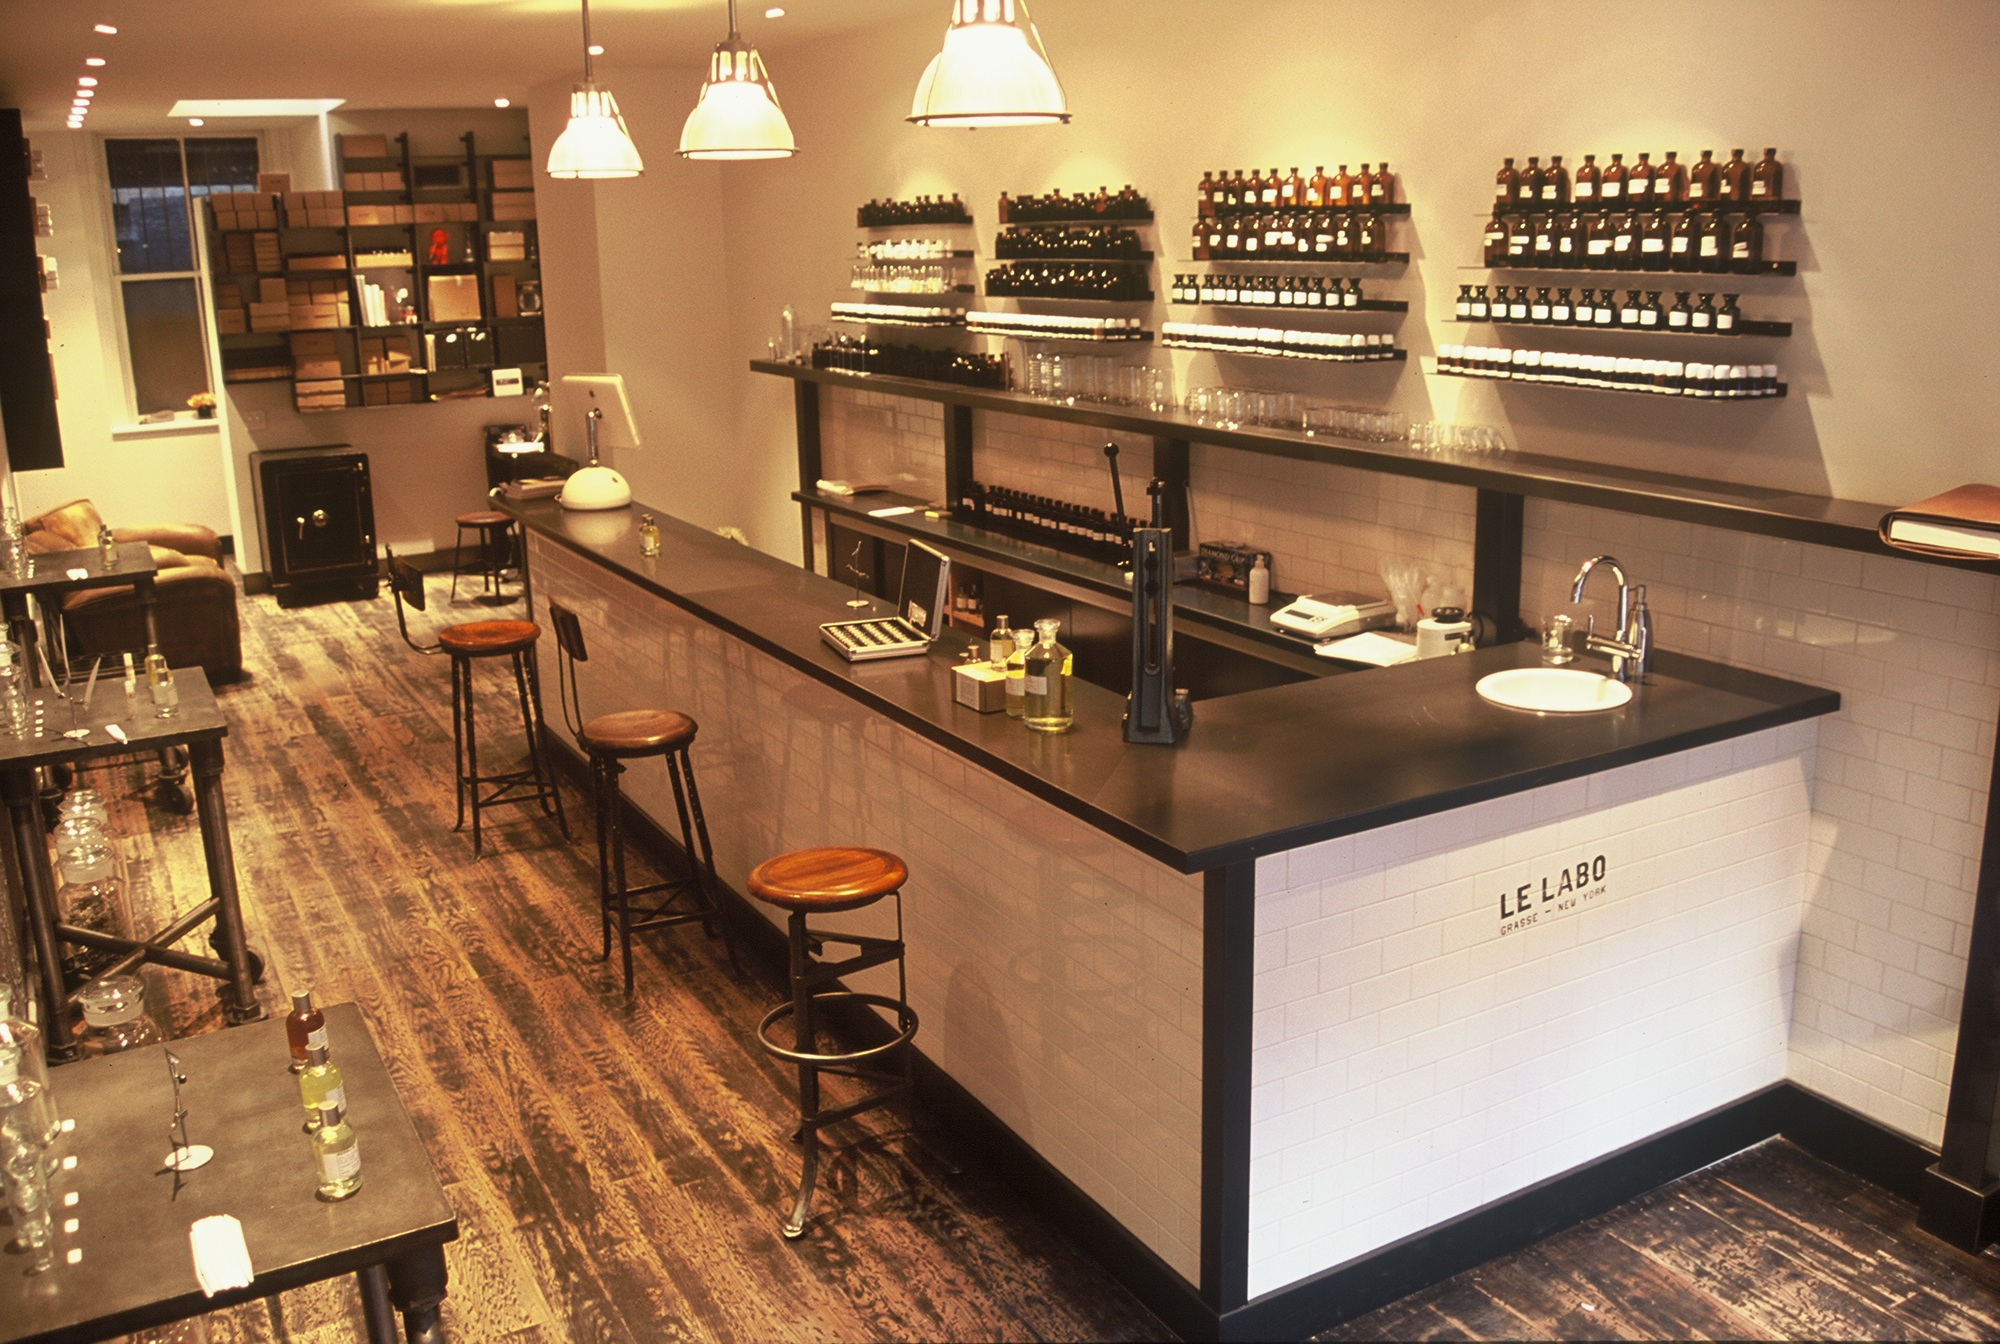 Le Labo's New York outpost on Elizabeth Street in Nolita.  Photo courtesy Le Labo.